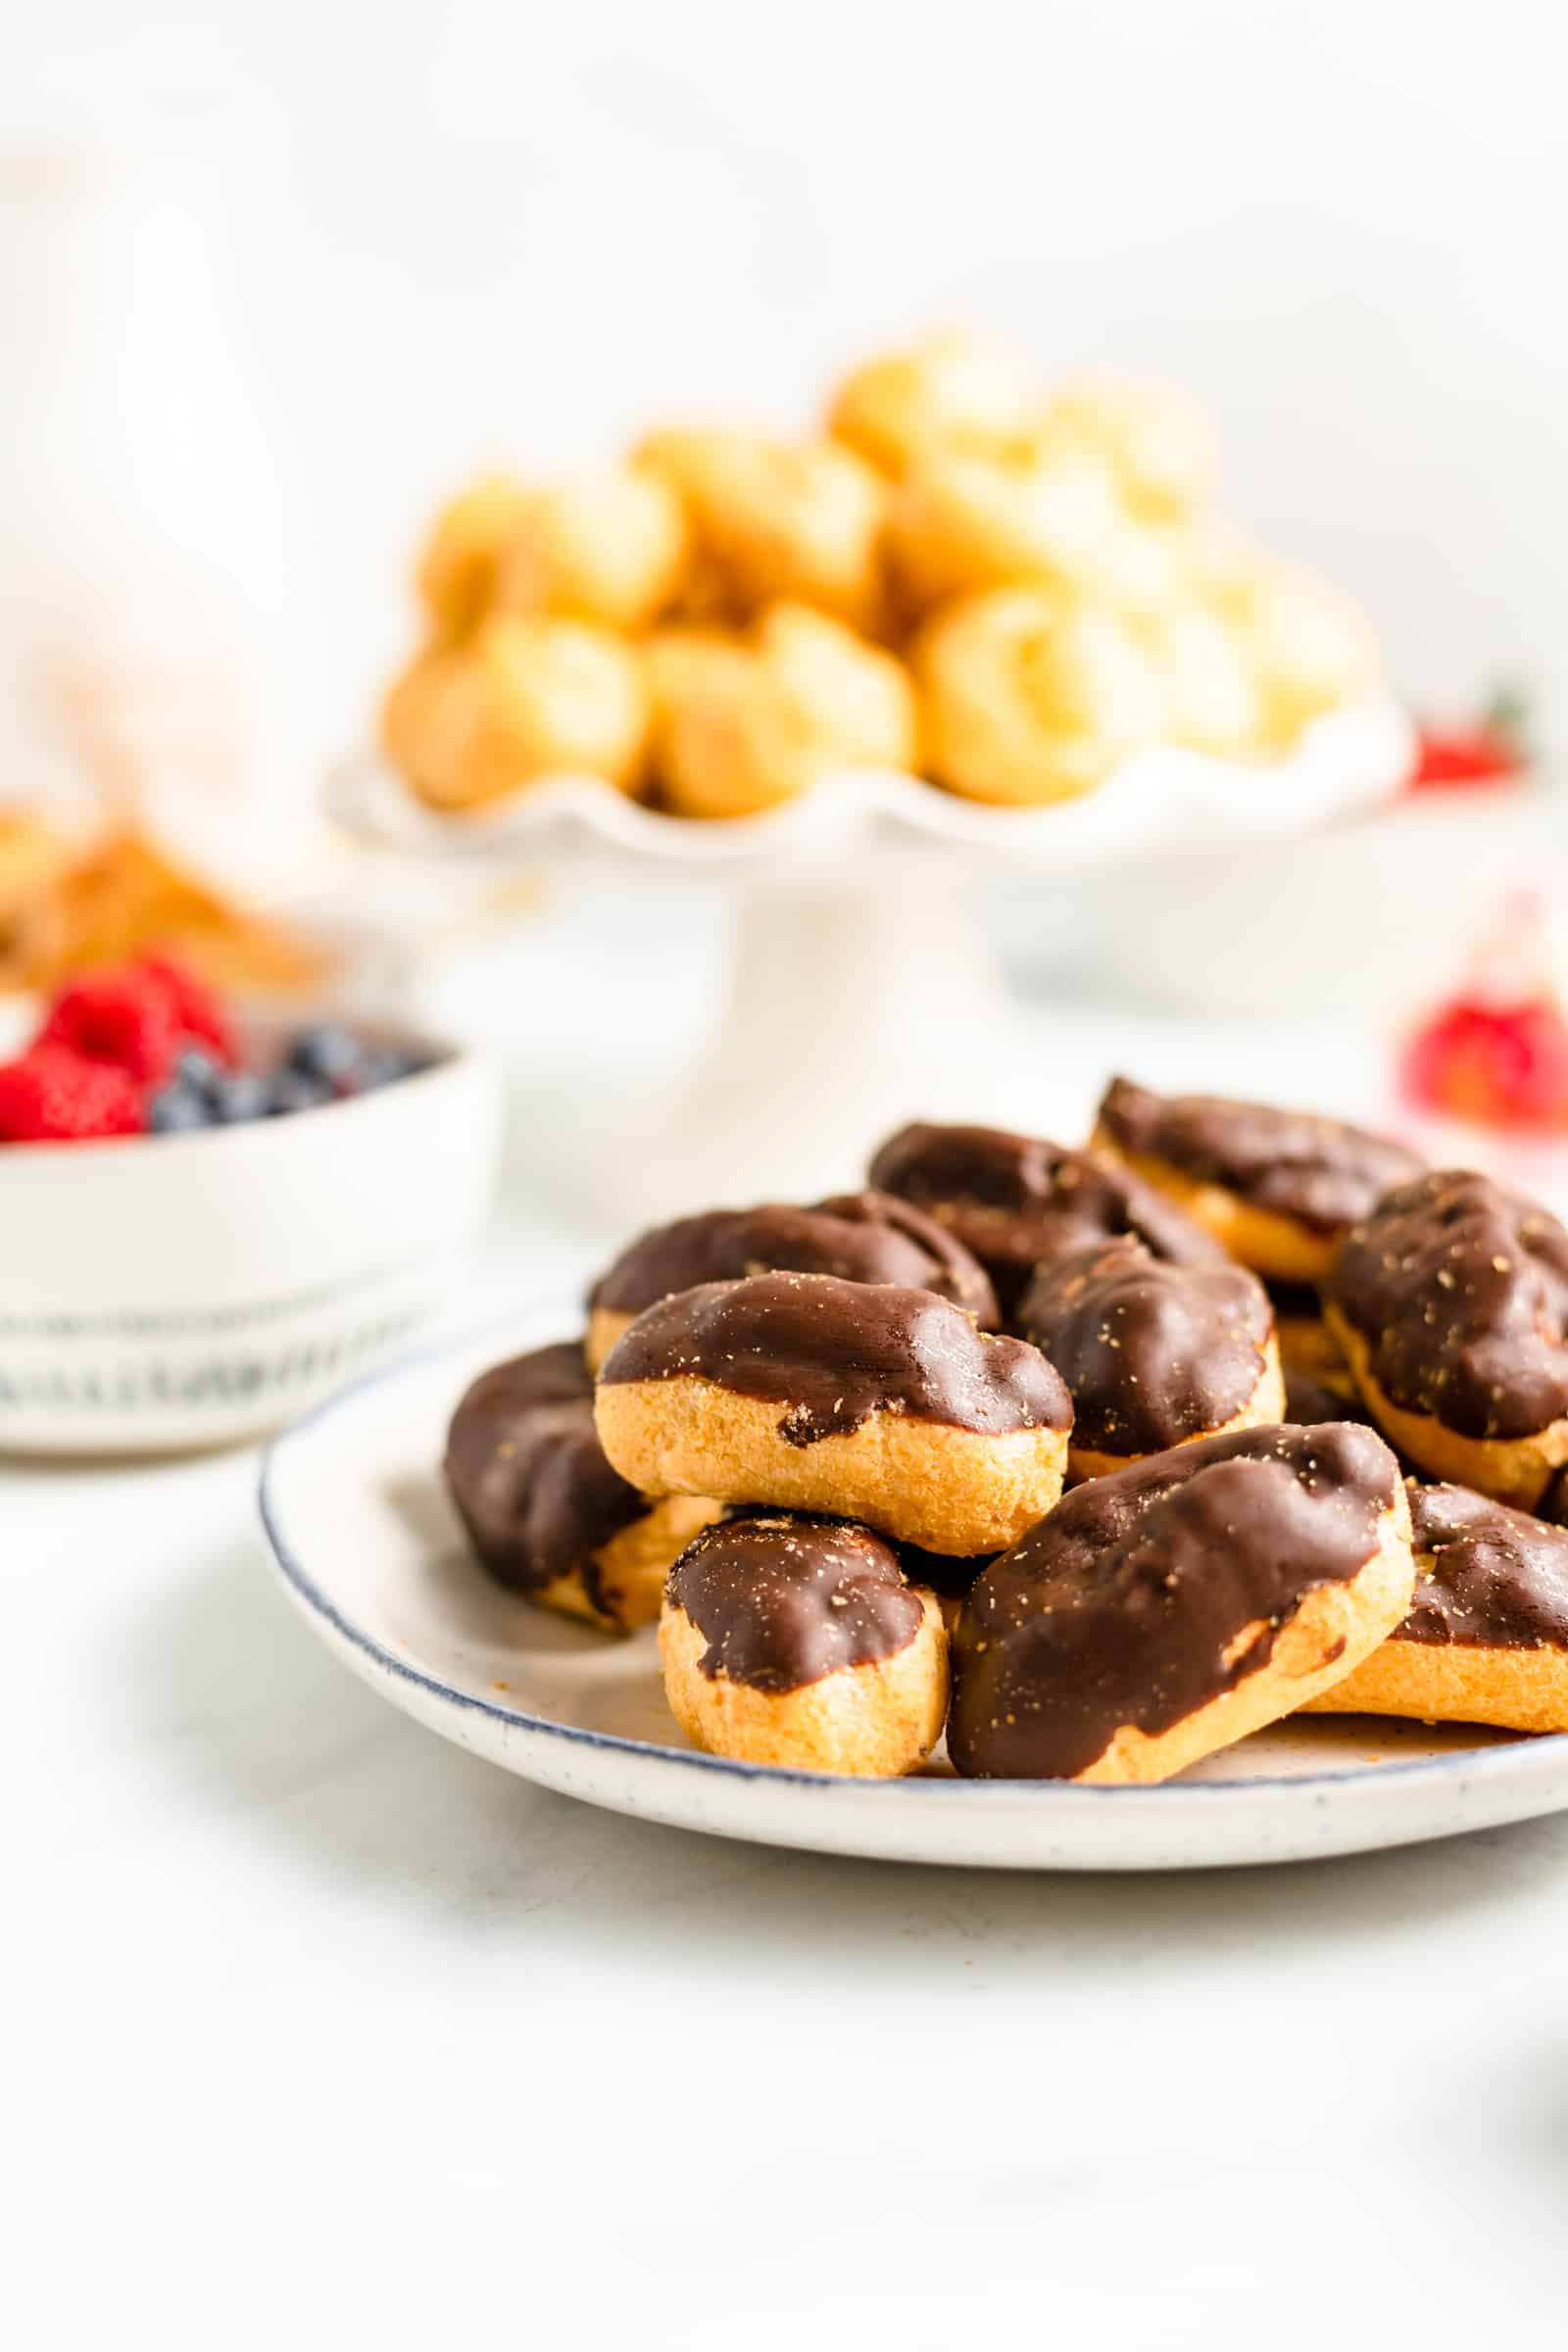 Chocolate covered eclairs